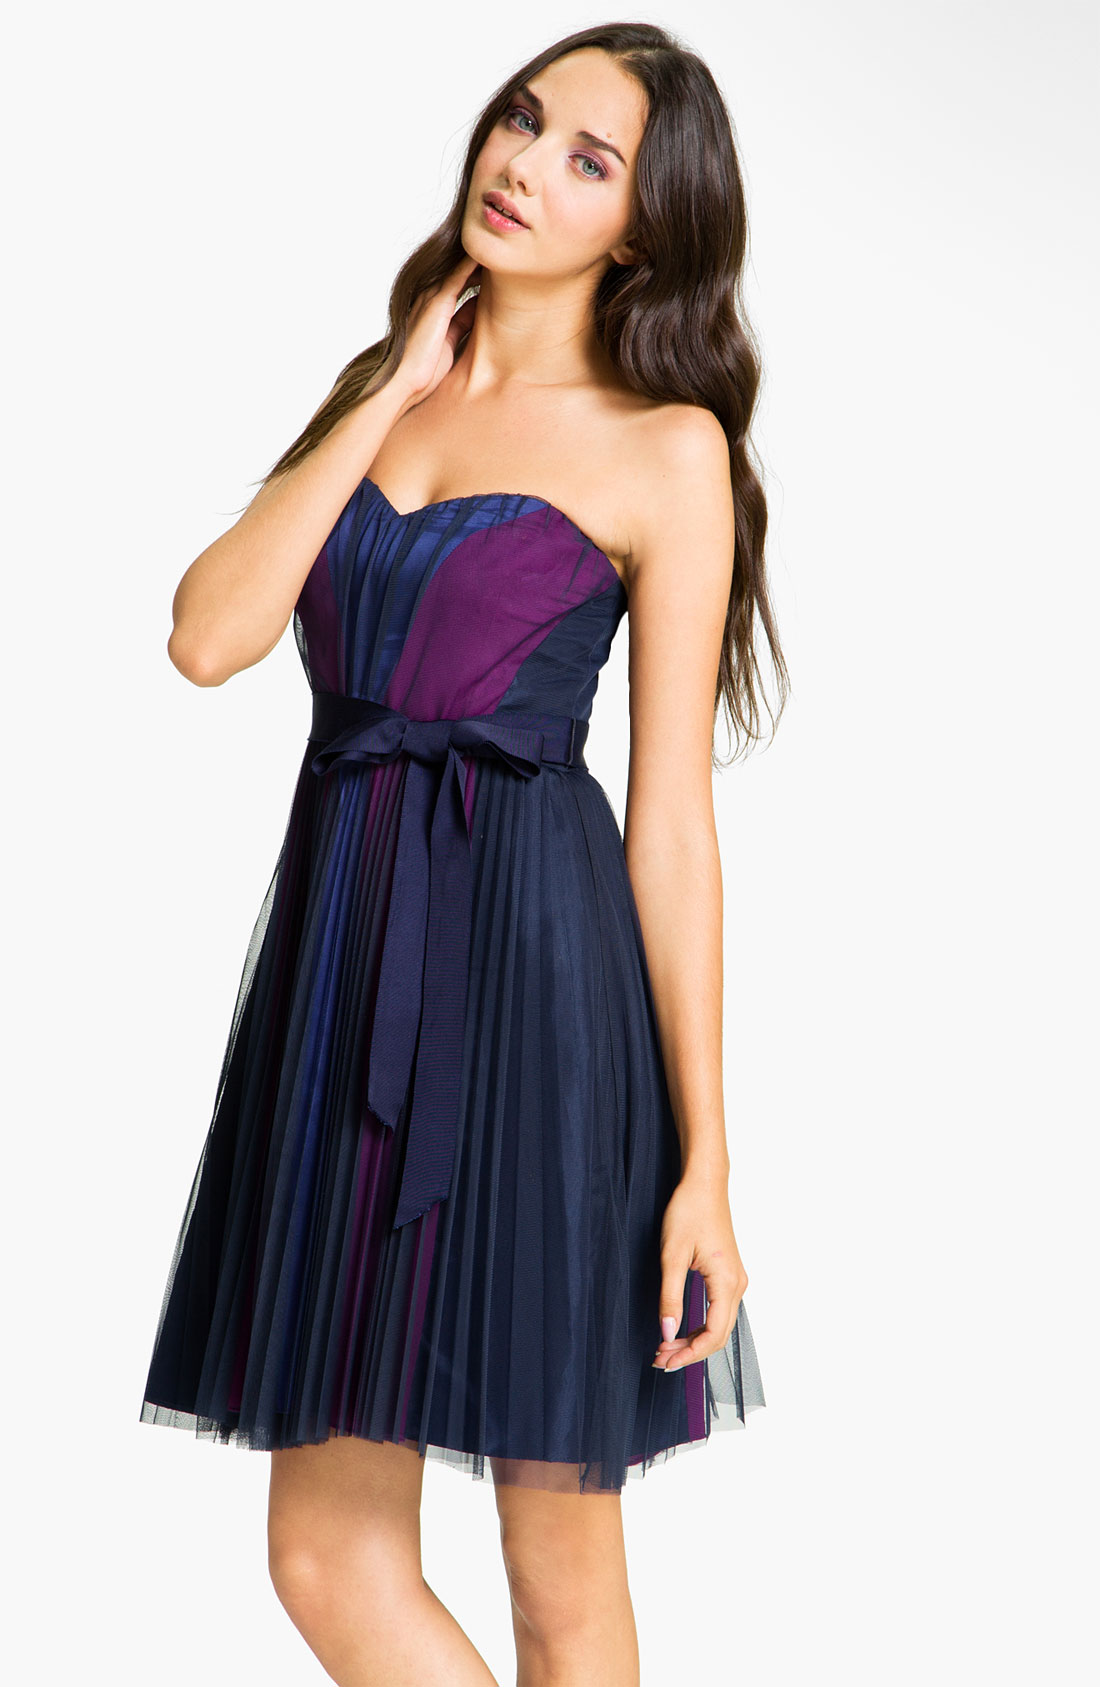 Collection of Max And Cleo Dresses - Best Fashion Trends and Models